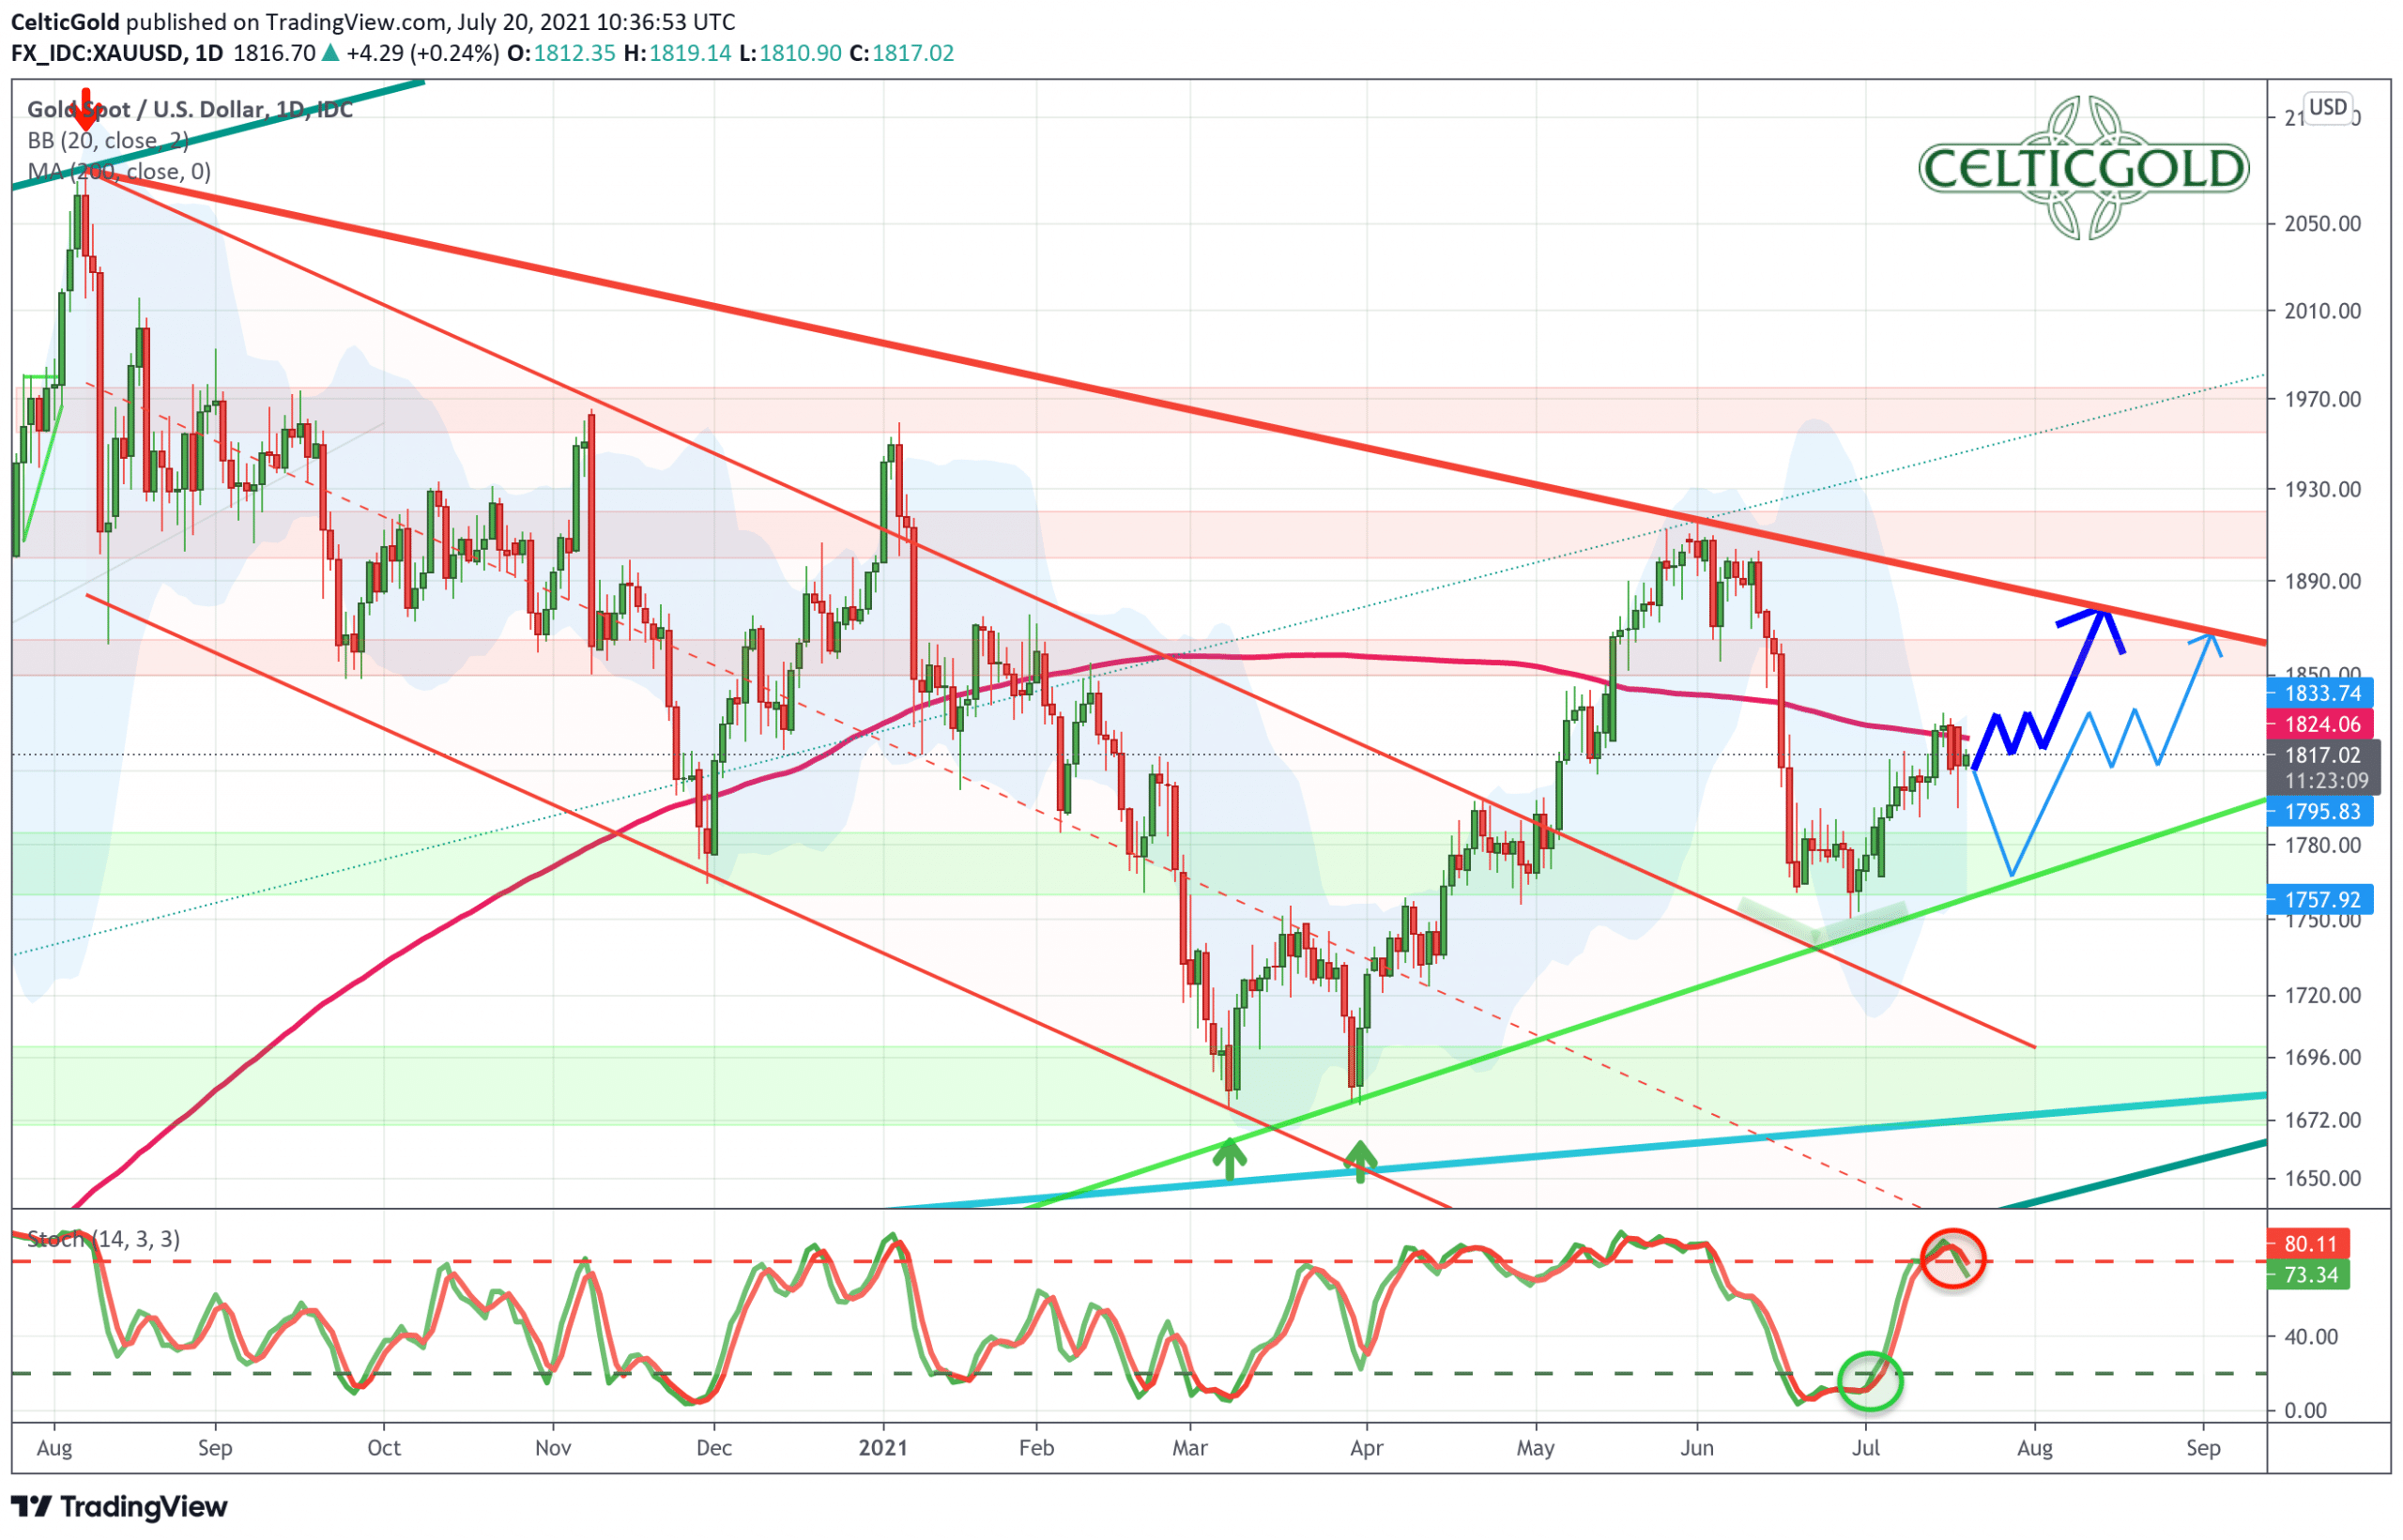 Gold in US-Dollars, daily chart as of July 20th, 2021. Source: Tradingview. Gold - Has the summer rally already begun?